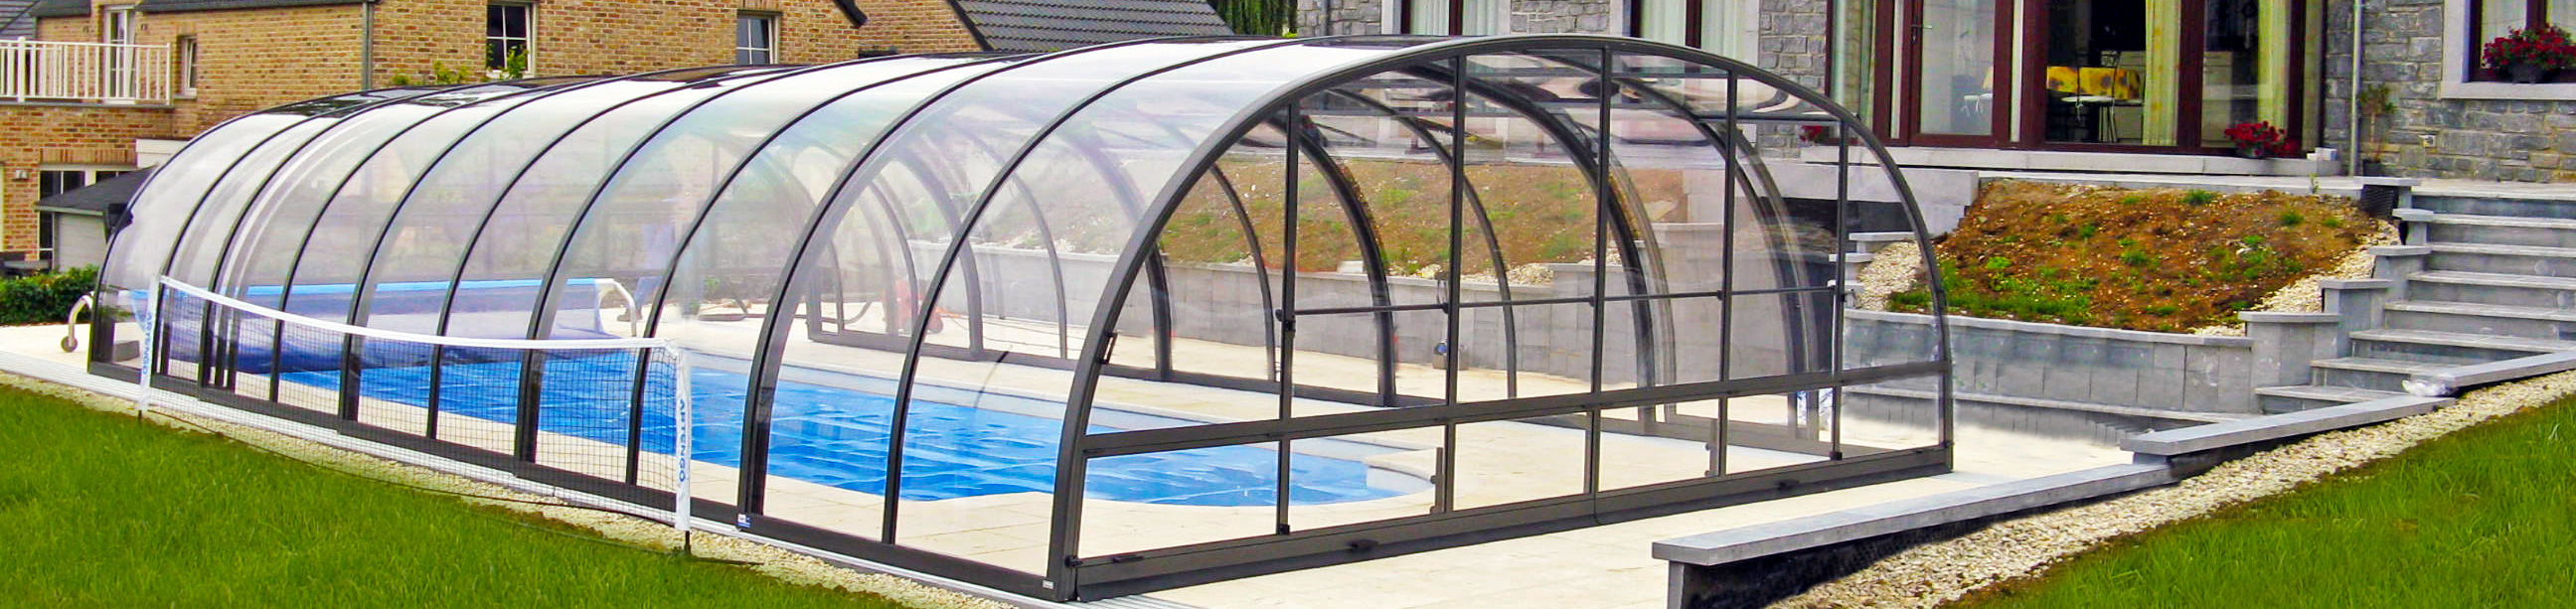 High Pool Enclosures from Alukov